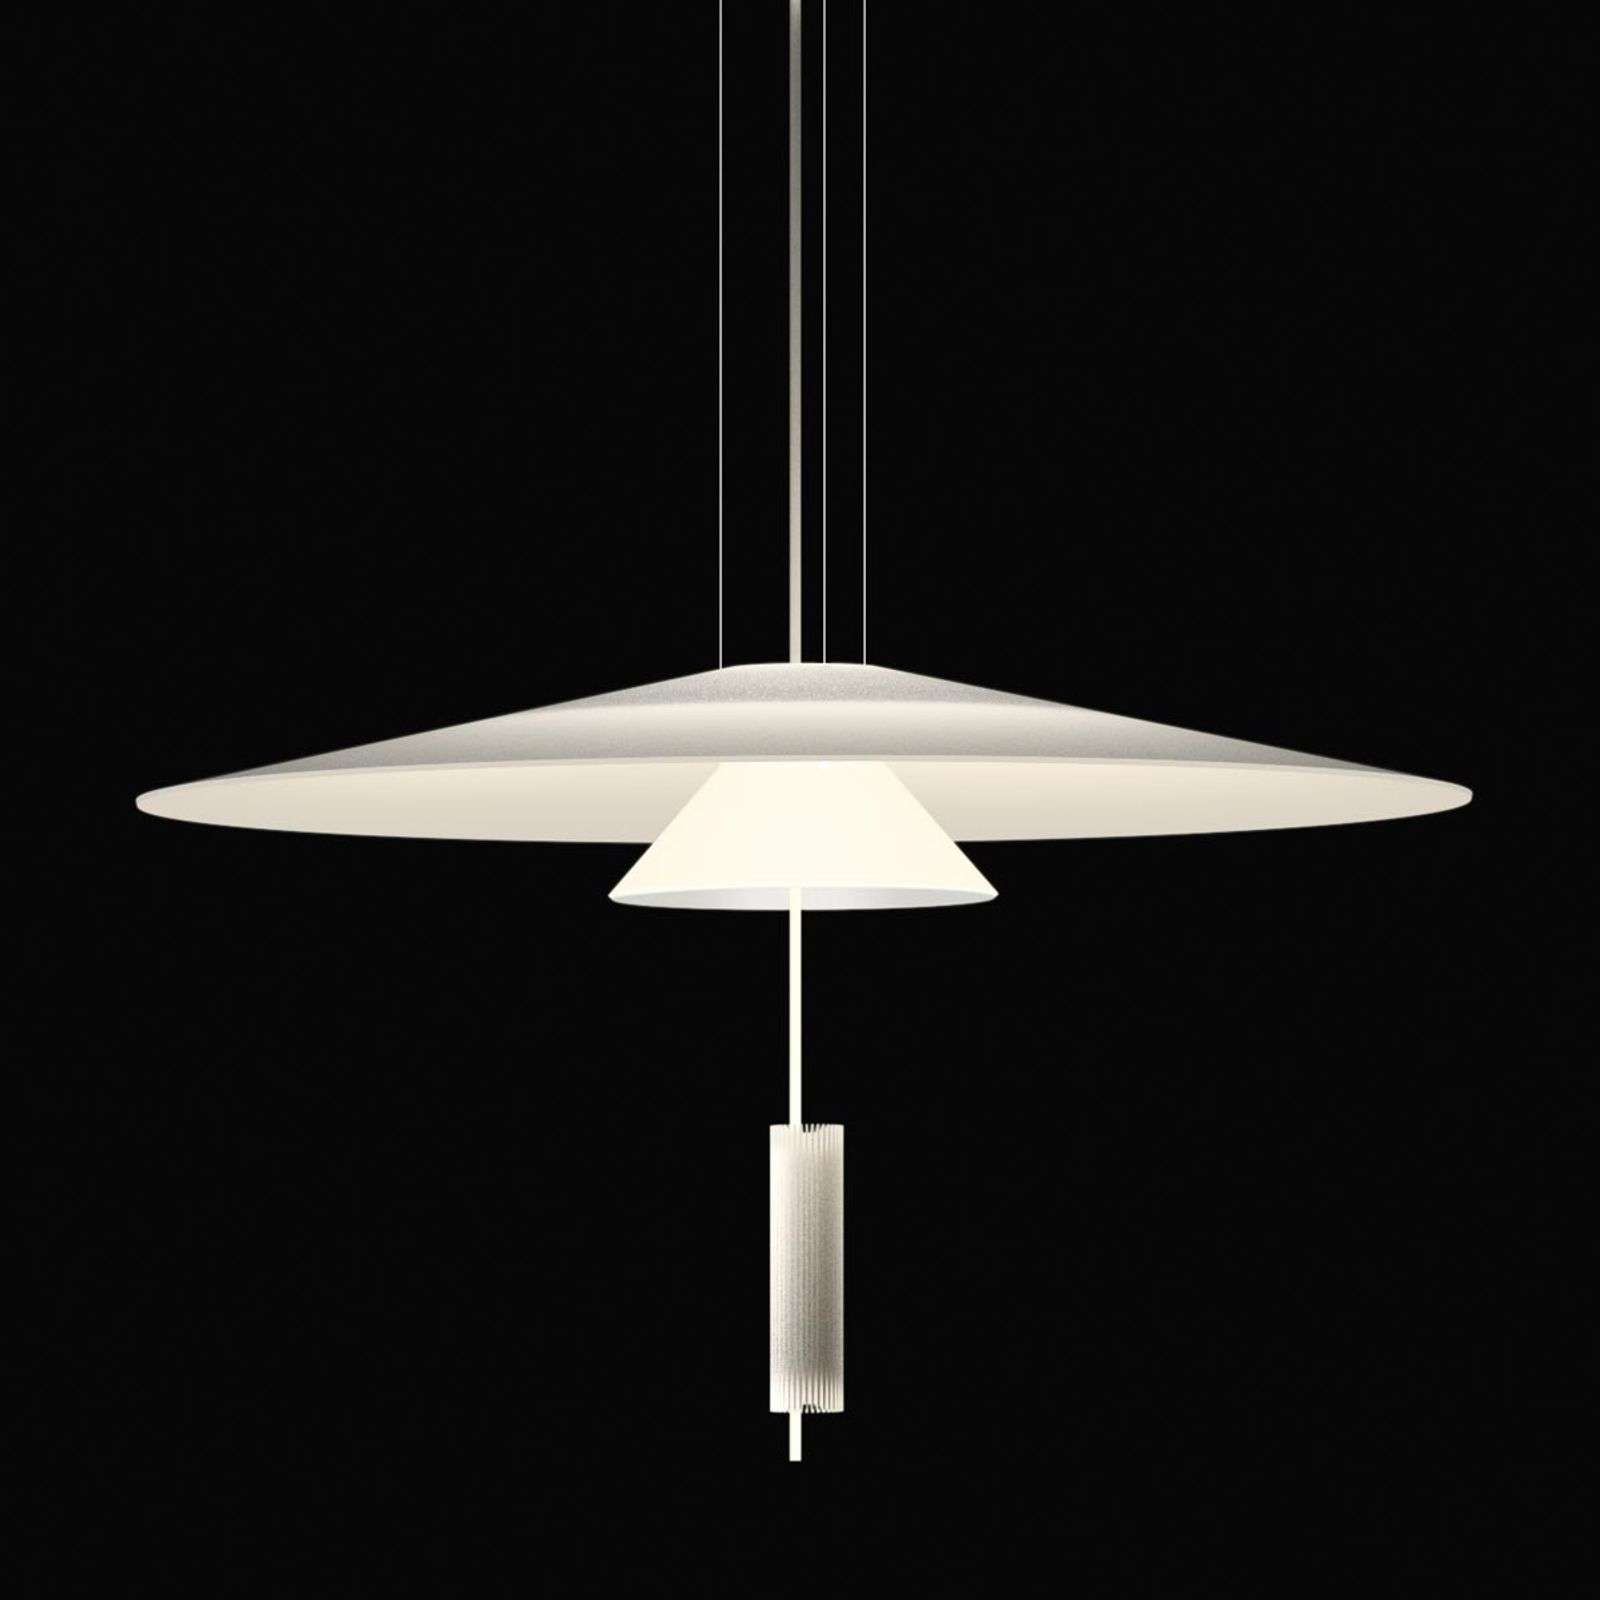 Suspension design Flamingo avec éclairage LED